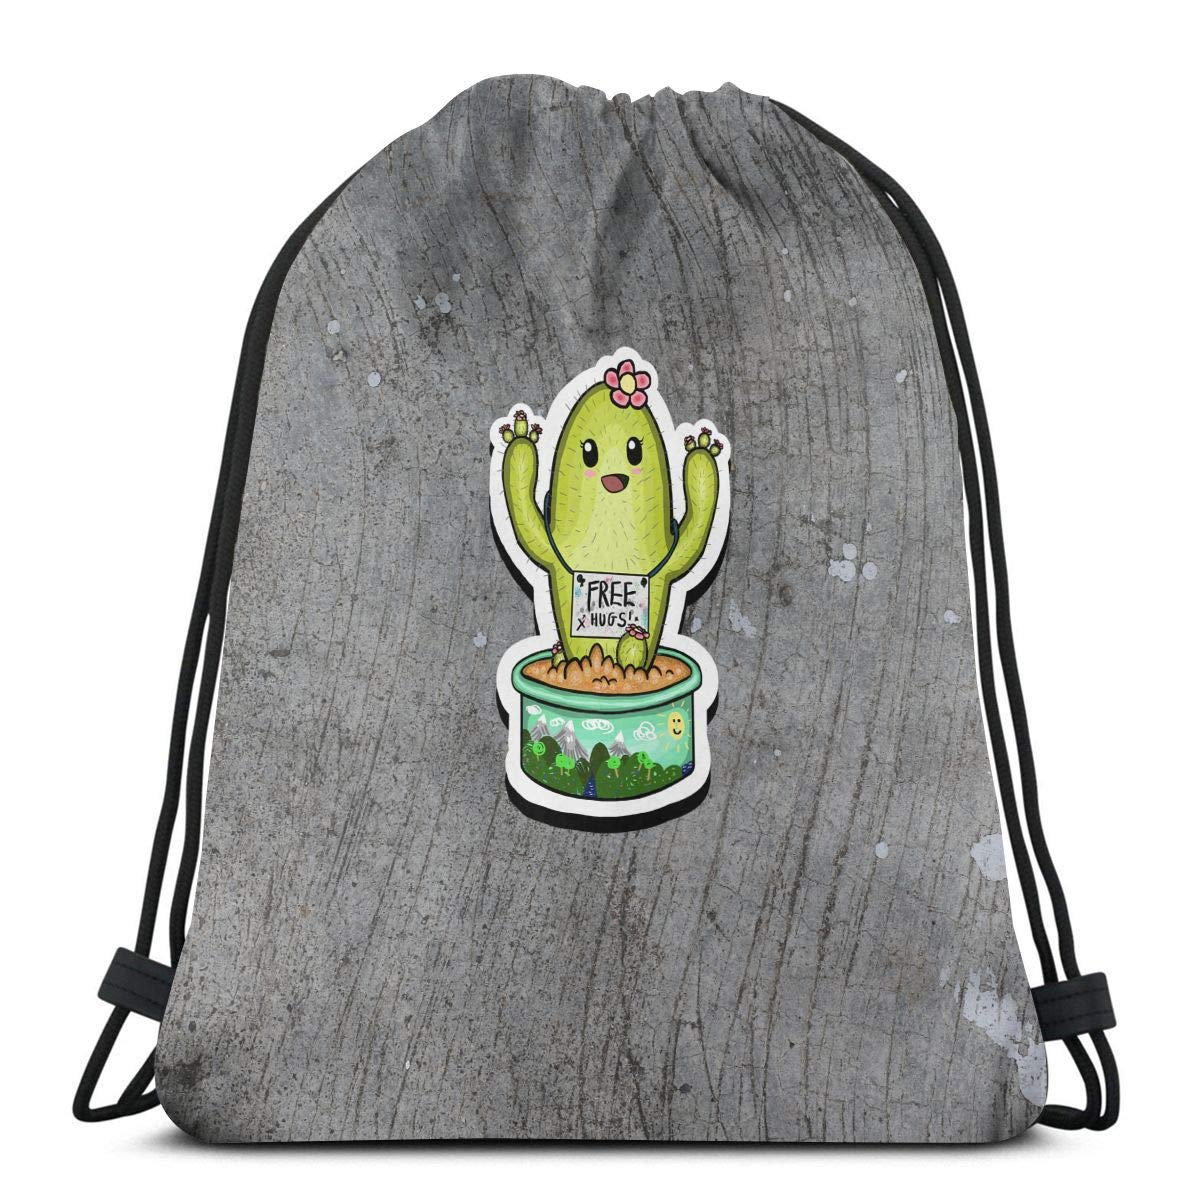 Wangchangjin Drawstring Bags Cactus Free Hugs Sport Gym Tennis Casual Daypack Backpacks Swimming Hiking Yoga Portable Travel for Women and Men